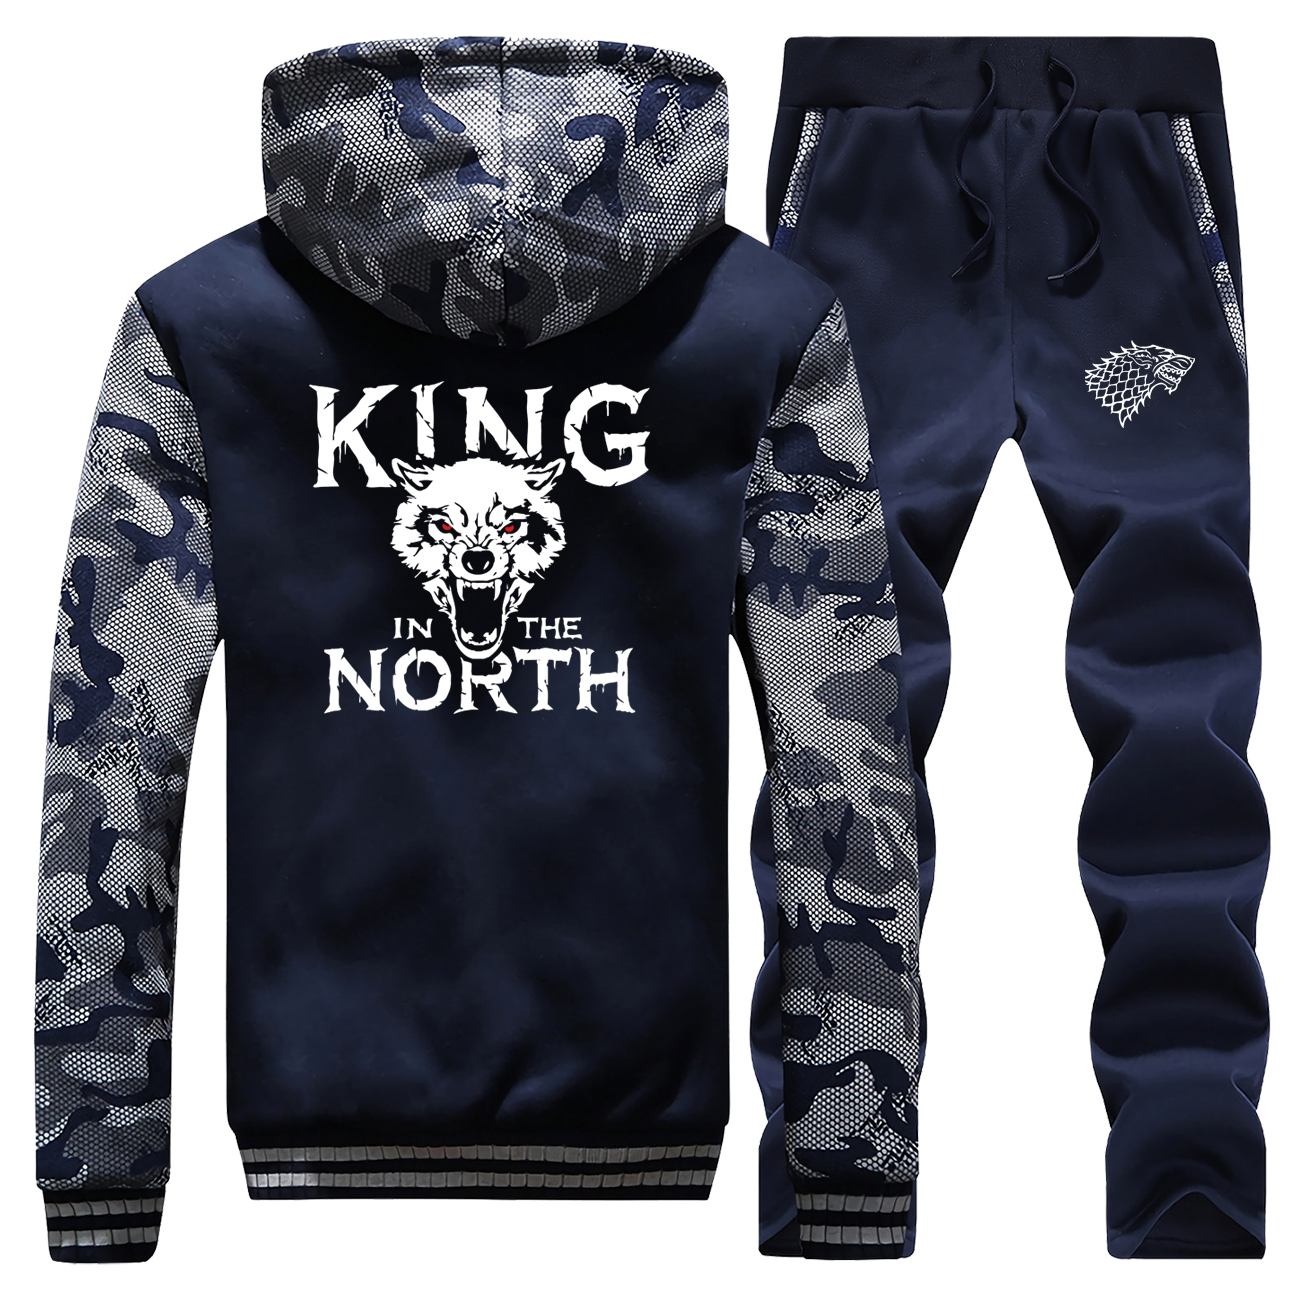 Game Of Thrones House Of Stark Winter Hot Sale Camouflage Mens Hoodies Warm Jackets Suit Coat Thick Sportswear+Pants 2 Piece